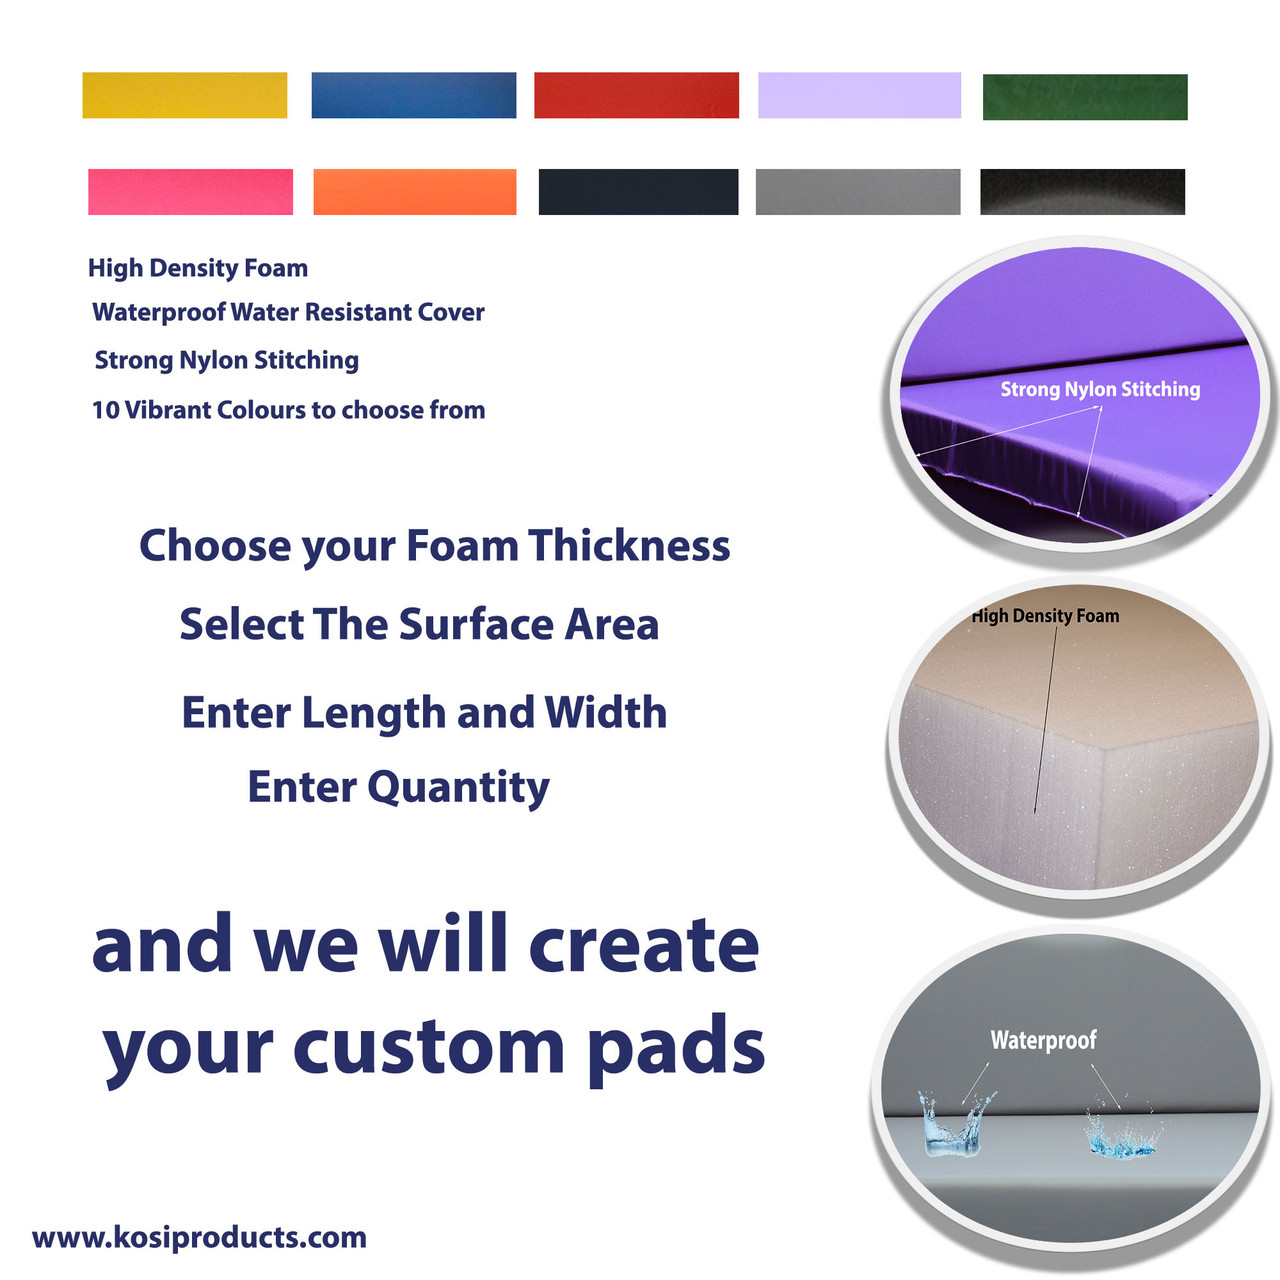 Custom Pad Colours and Specifications